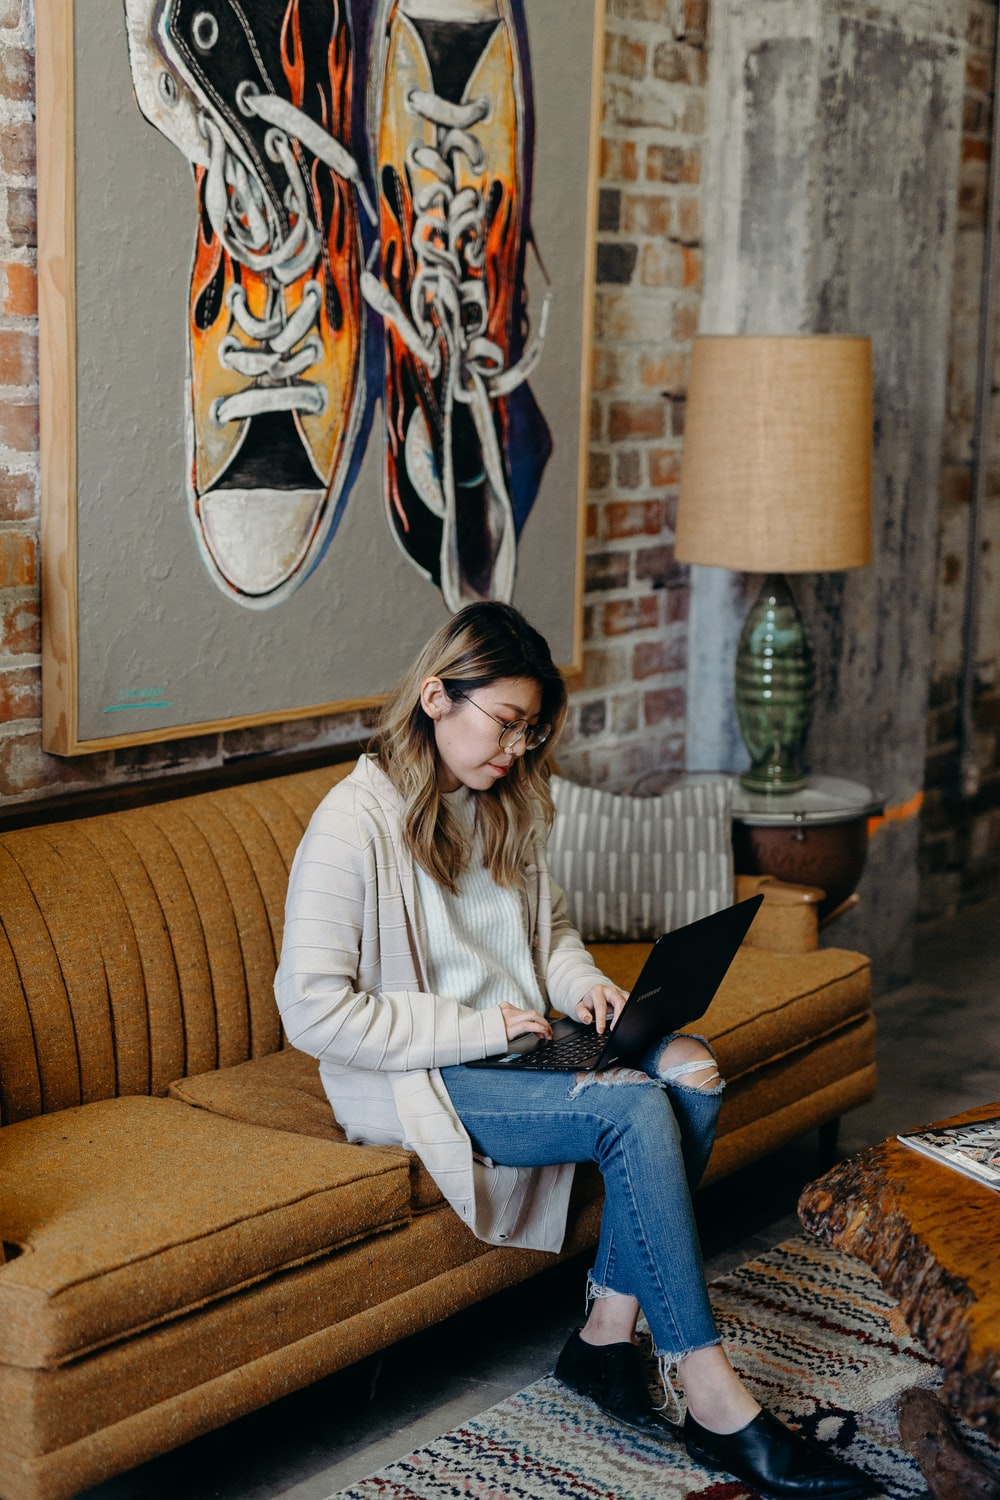 woman using laptop sitting on couch